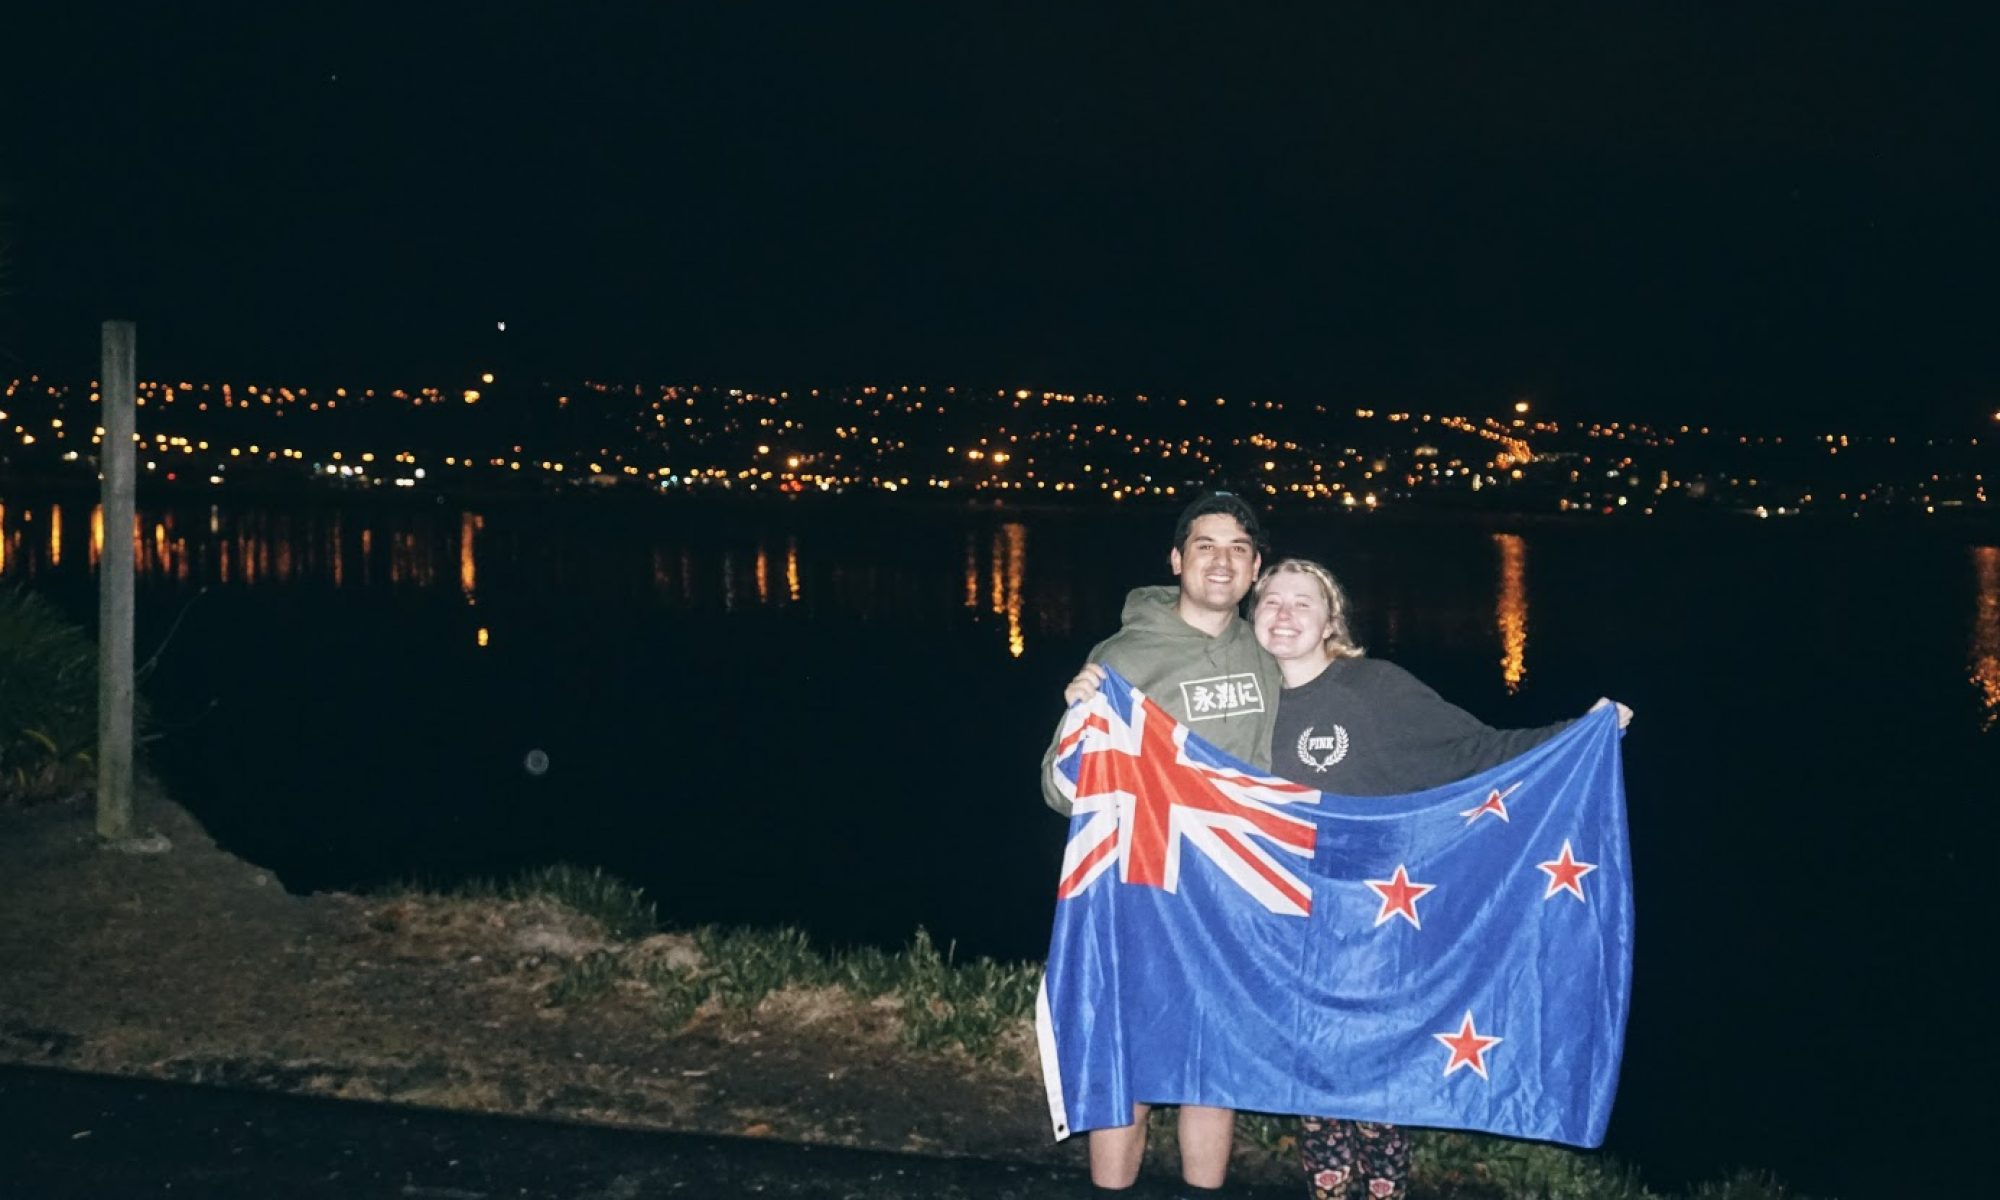 Adventures of a Mormon, Multi-cultural Family in NZ